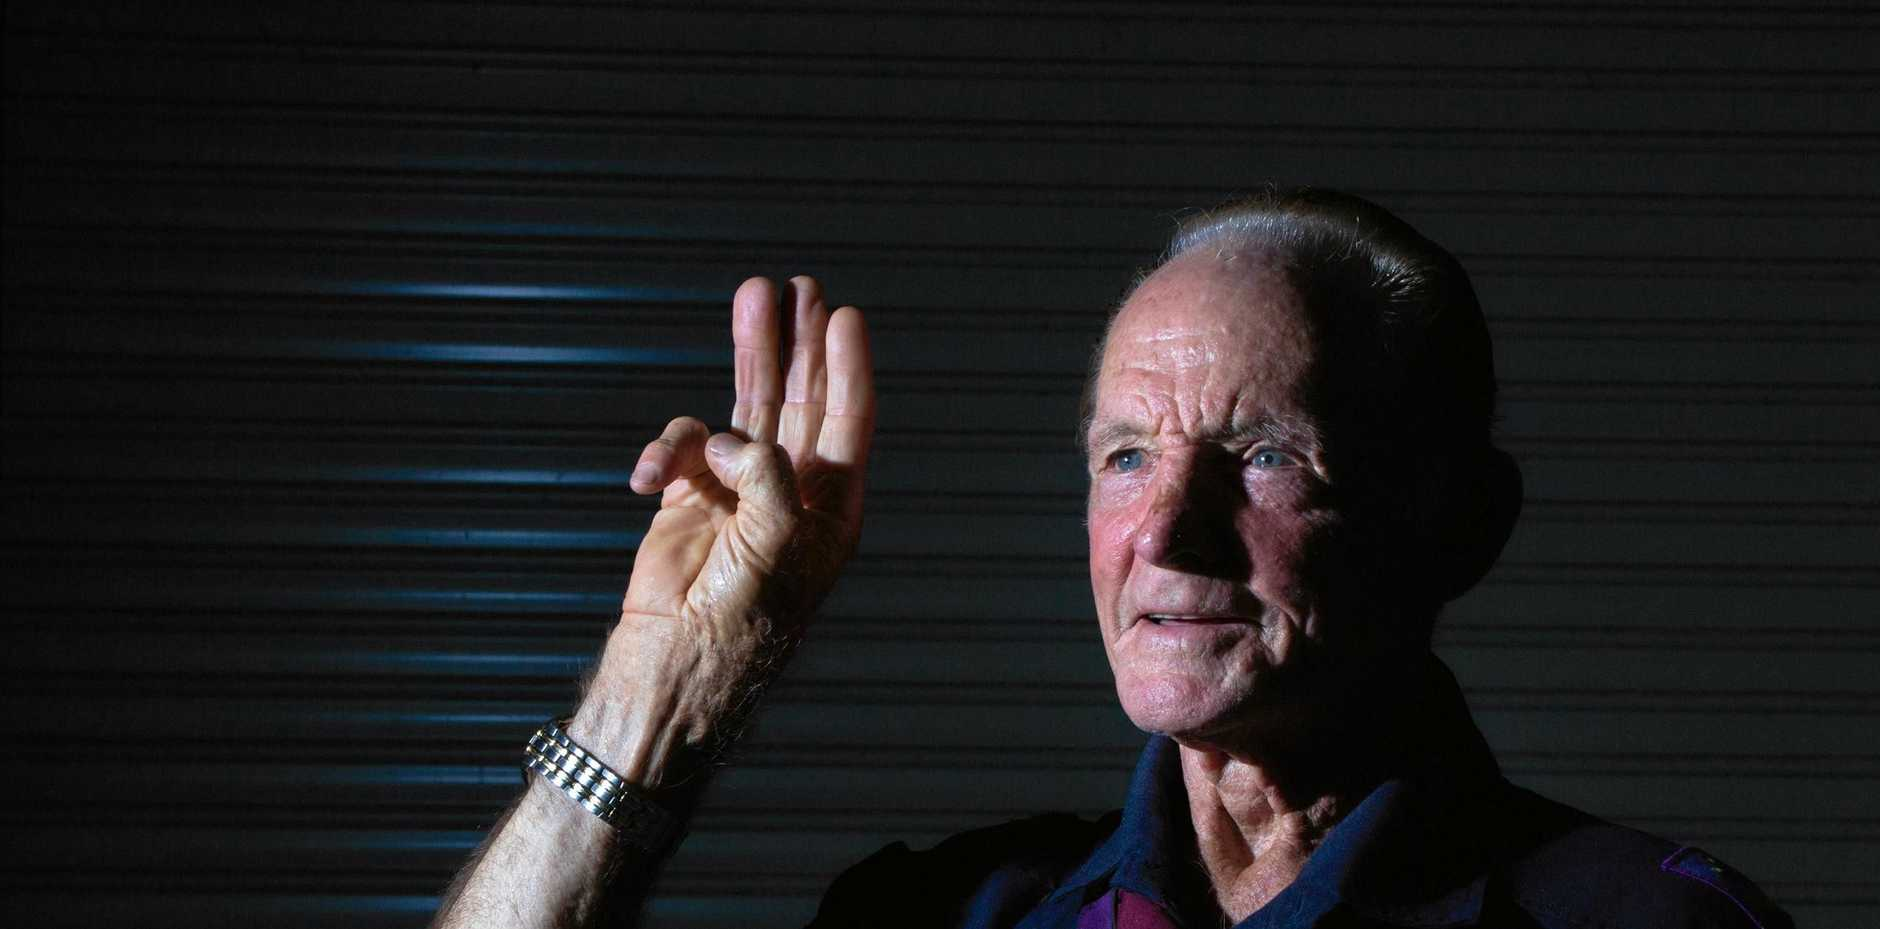 MR INCREDIBLE: Ernest Chesterton was name 2019 Lockyer Valley Citizen of the Year. Mr Chesterton is heavily involved in the community, and yesterday celebrated 39 years of involvement with the scouting movement.